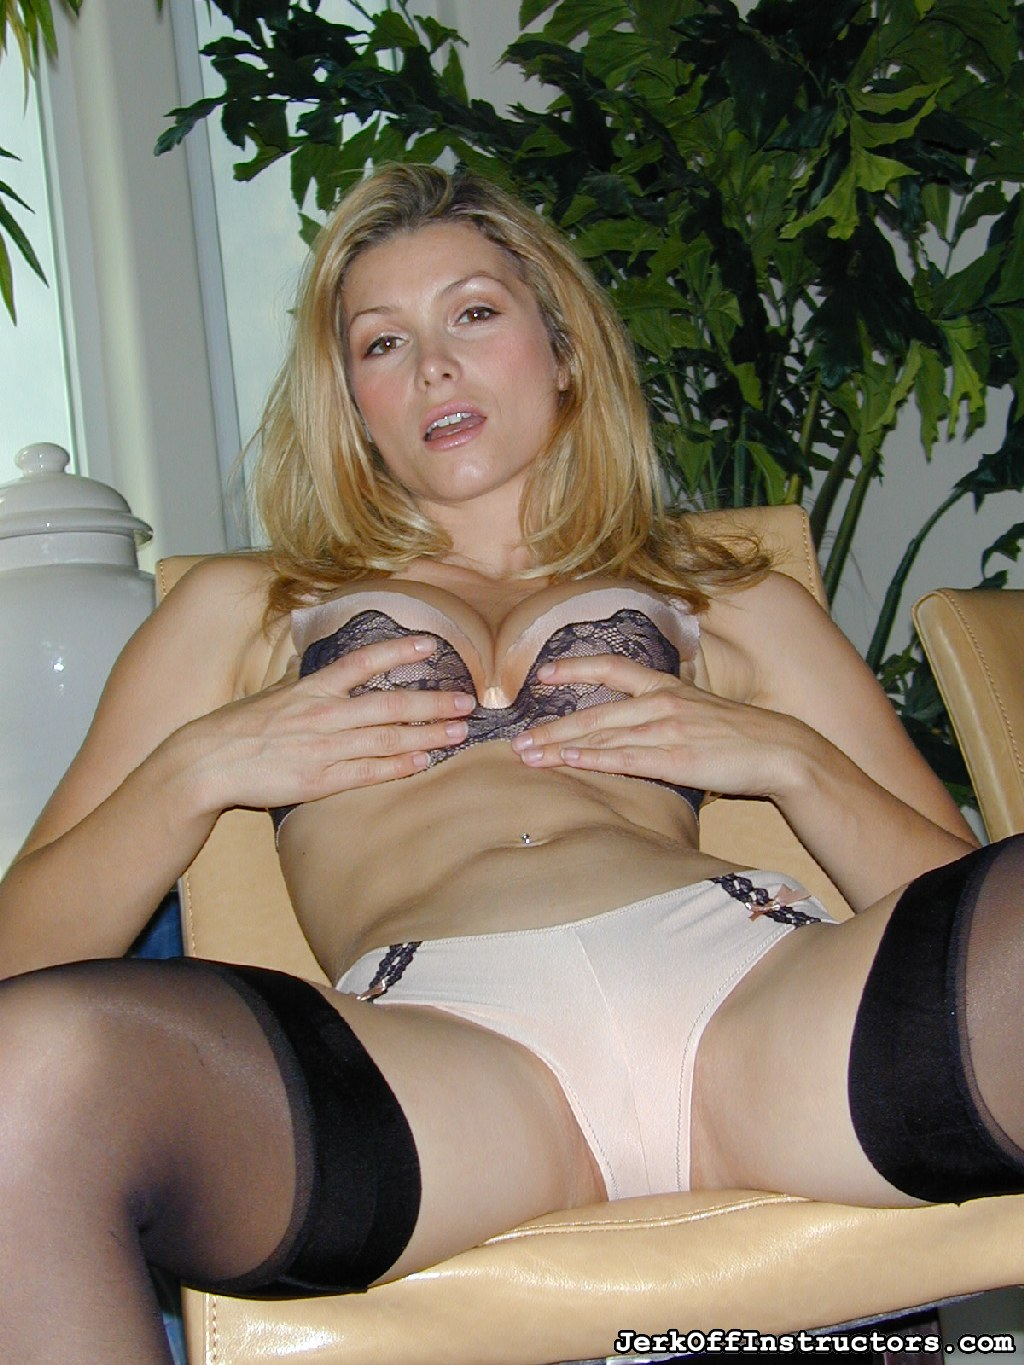 Nude bra  panties. In tan nylon bikini panties and bra with black thigh highs, Heather Vandeven keeps you violent by bending over and standing over you. She wants you to get a good look at what she brought you.